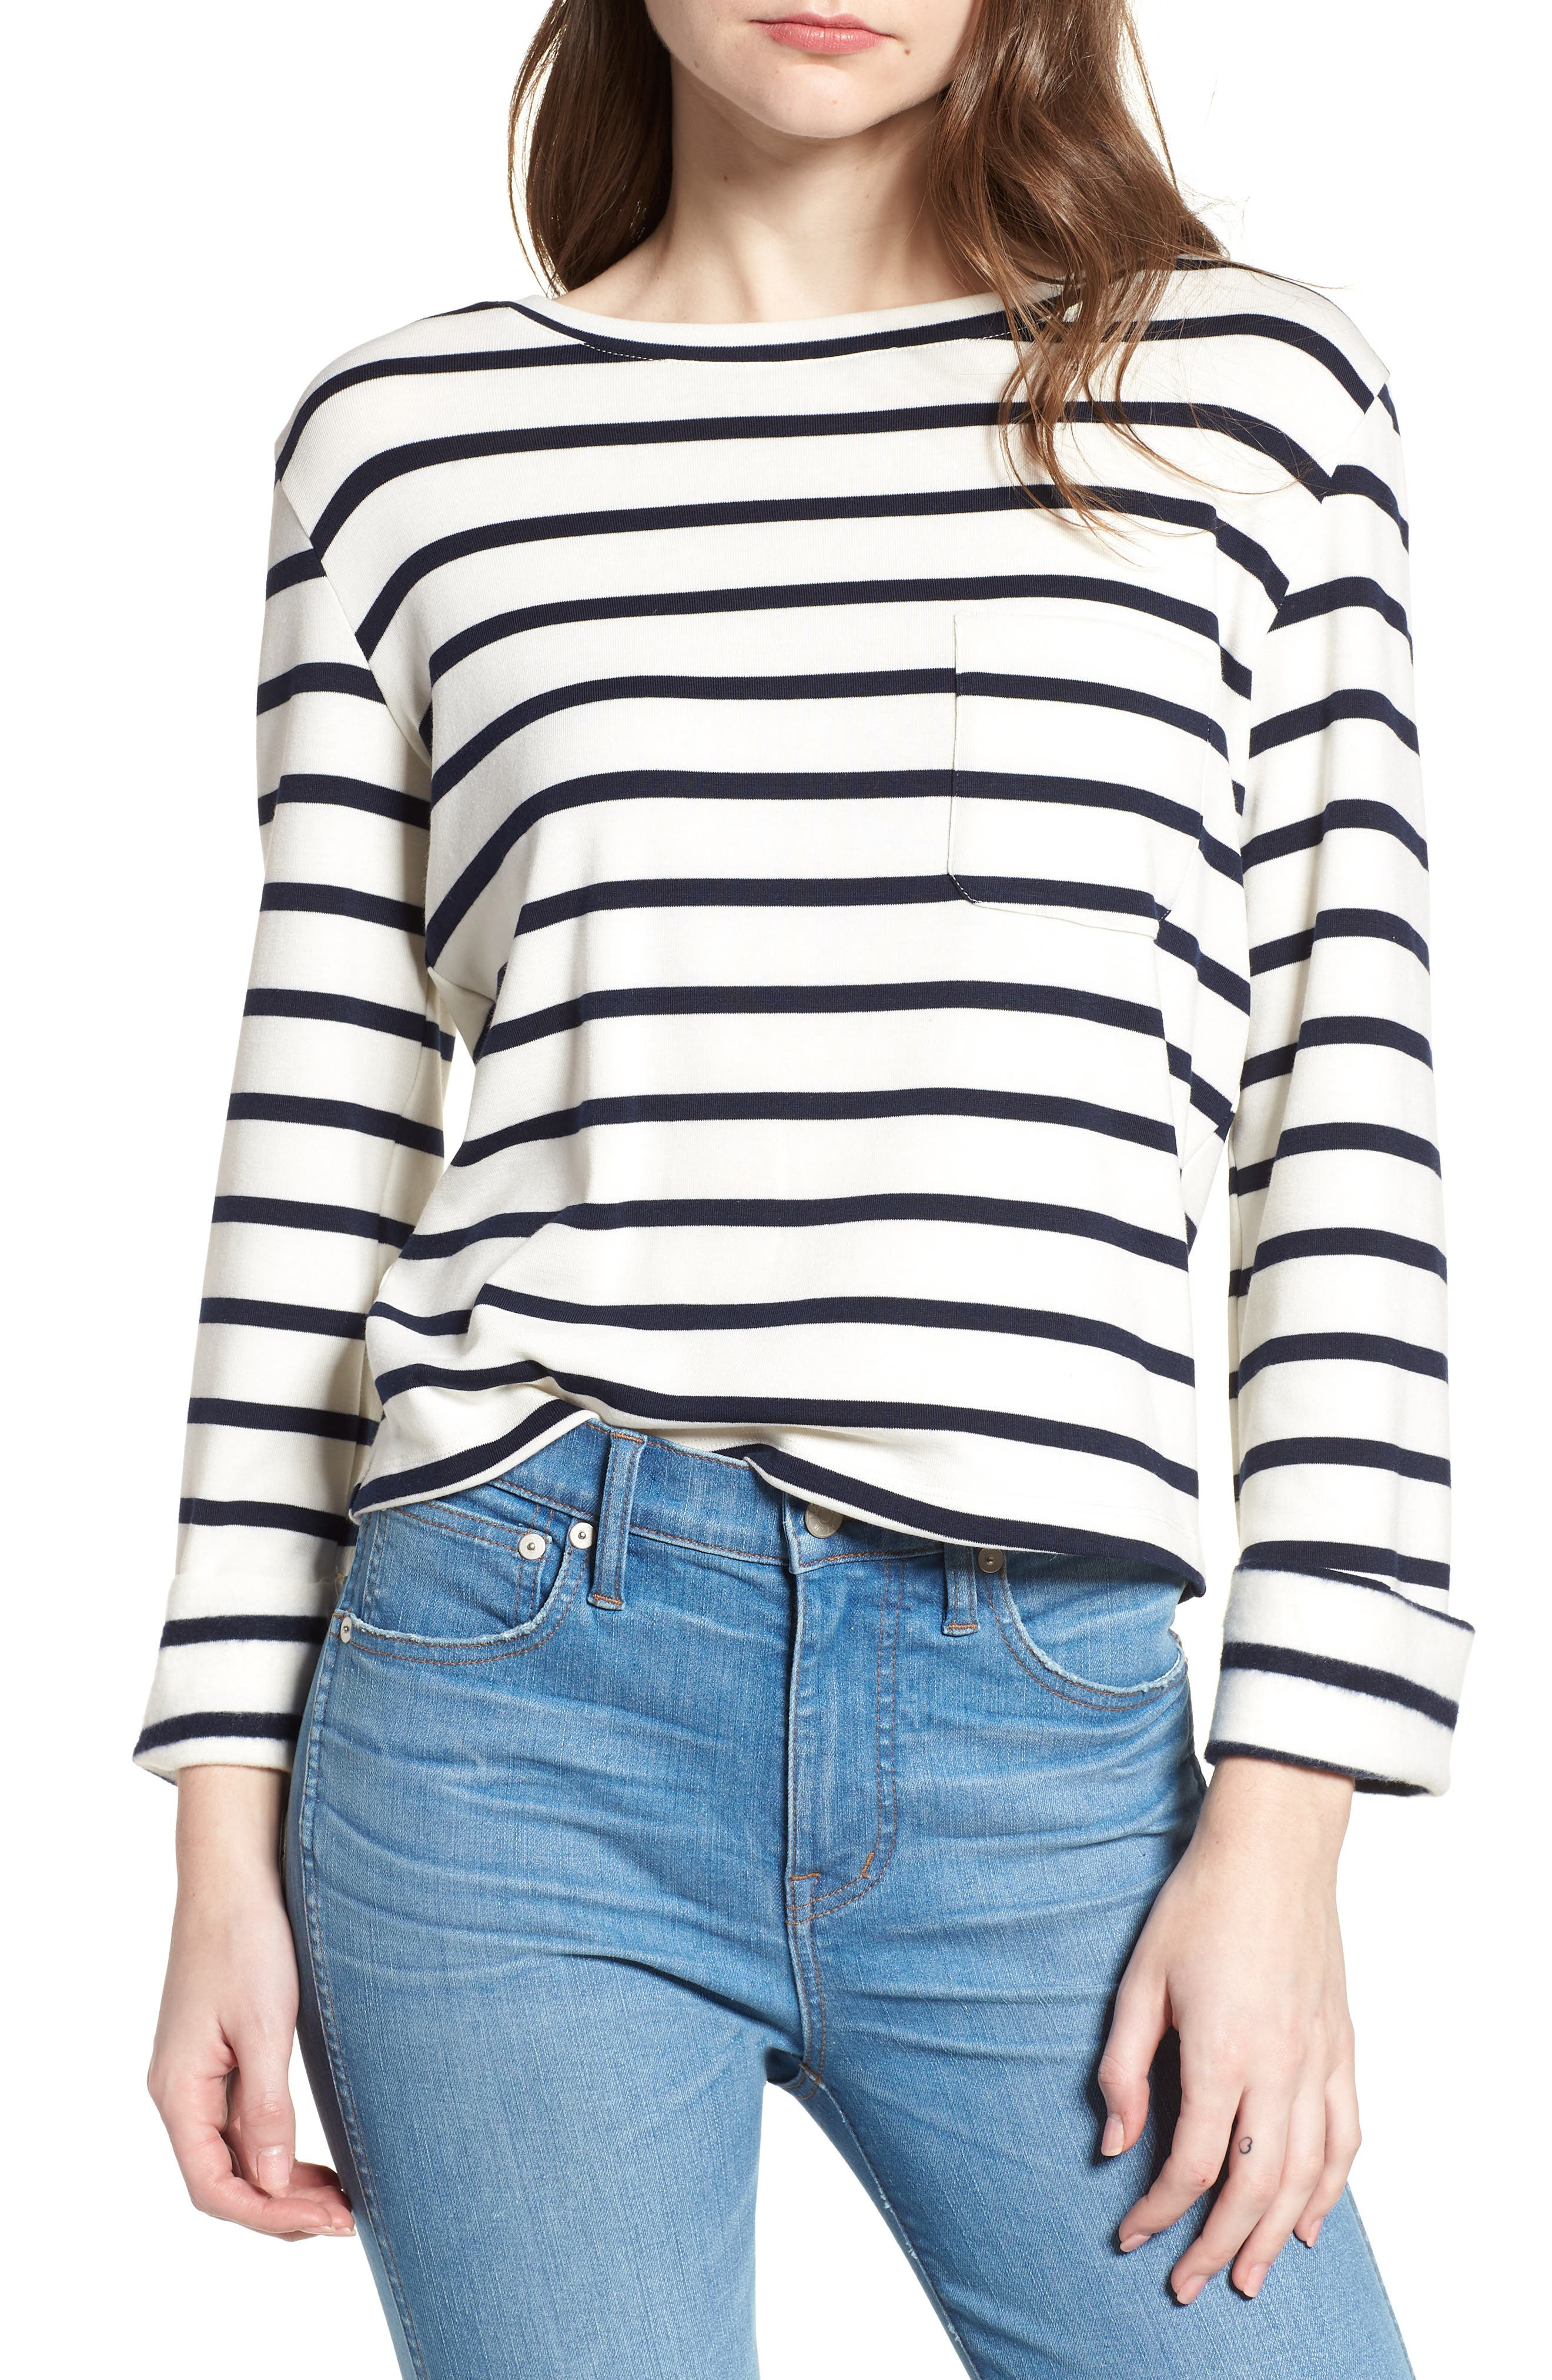 Bishop + Young Stripe Lace-Up Back Top,                         Main,                         color, 011